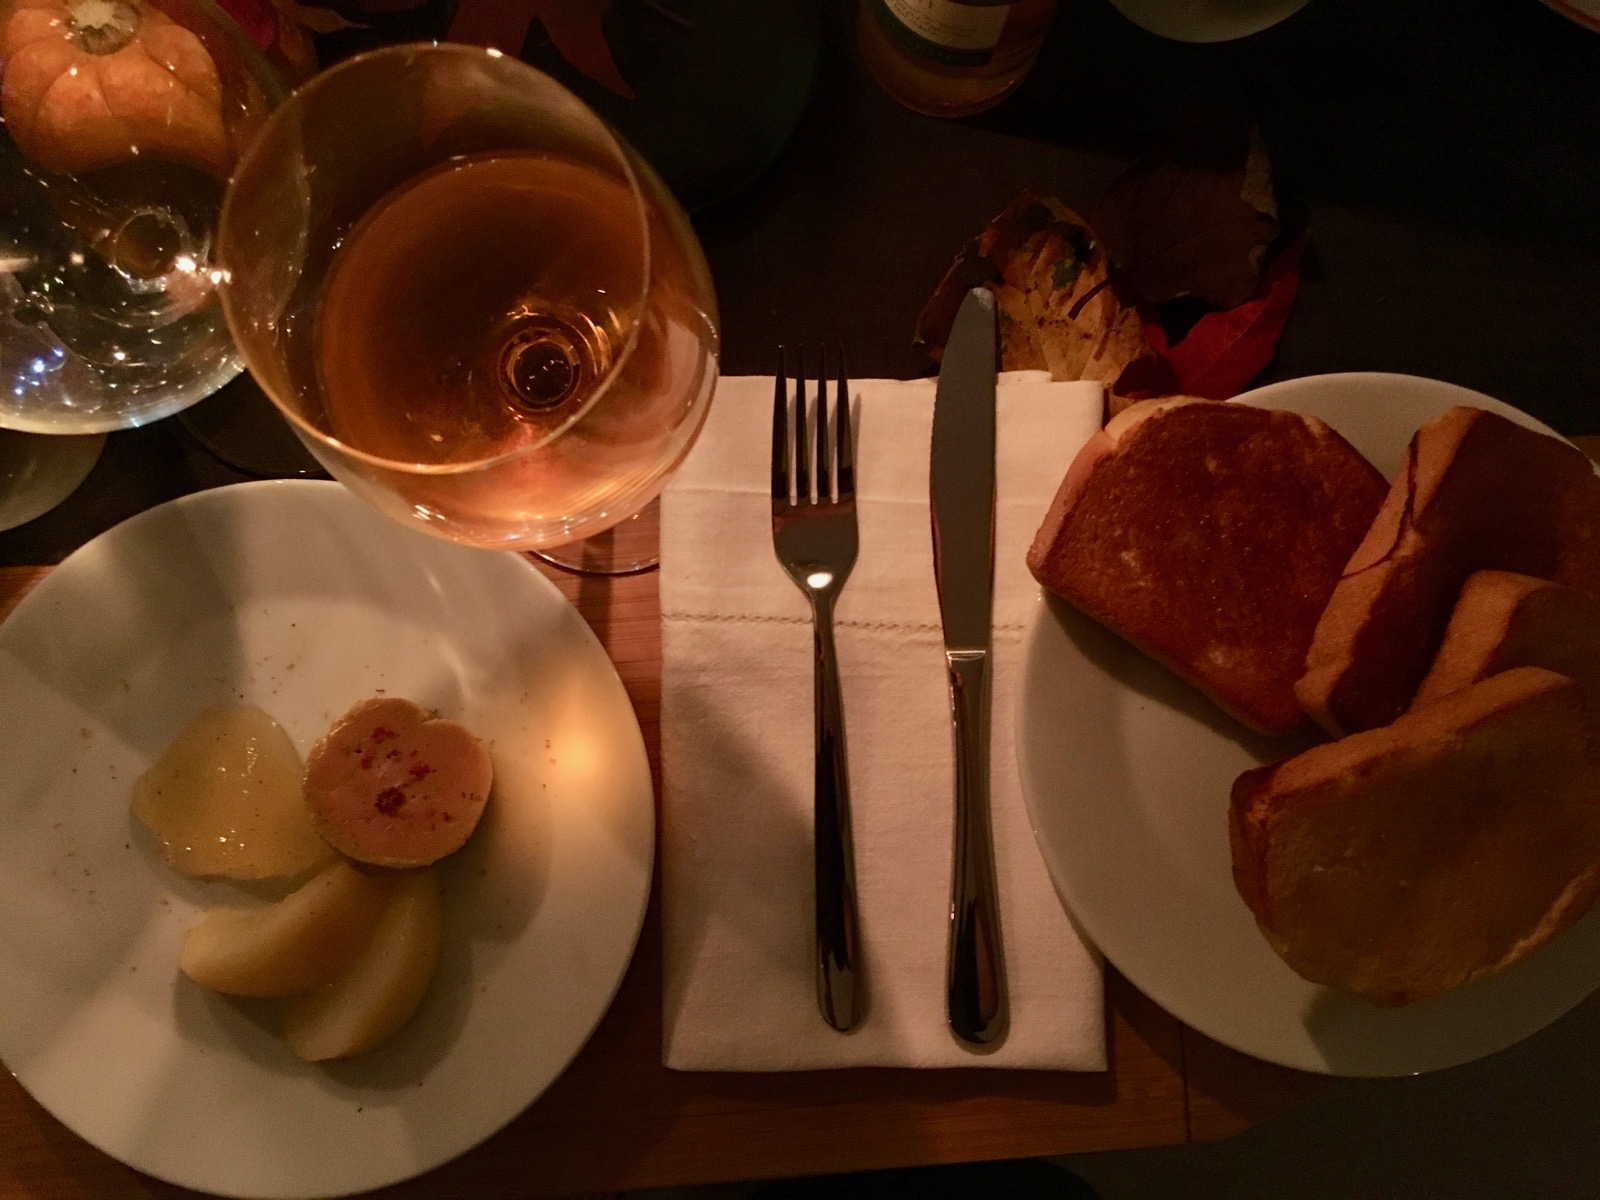 Foie gras duck liver with pear, brioche and Once Upon a Tree Pear ice wine